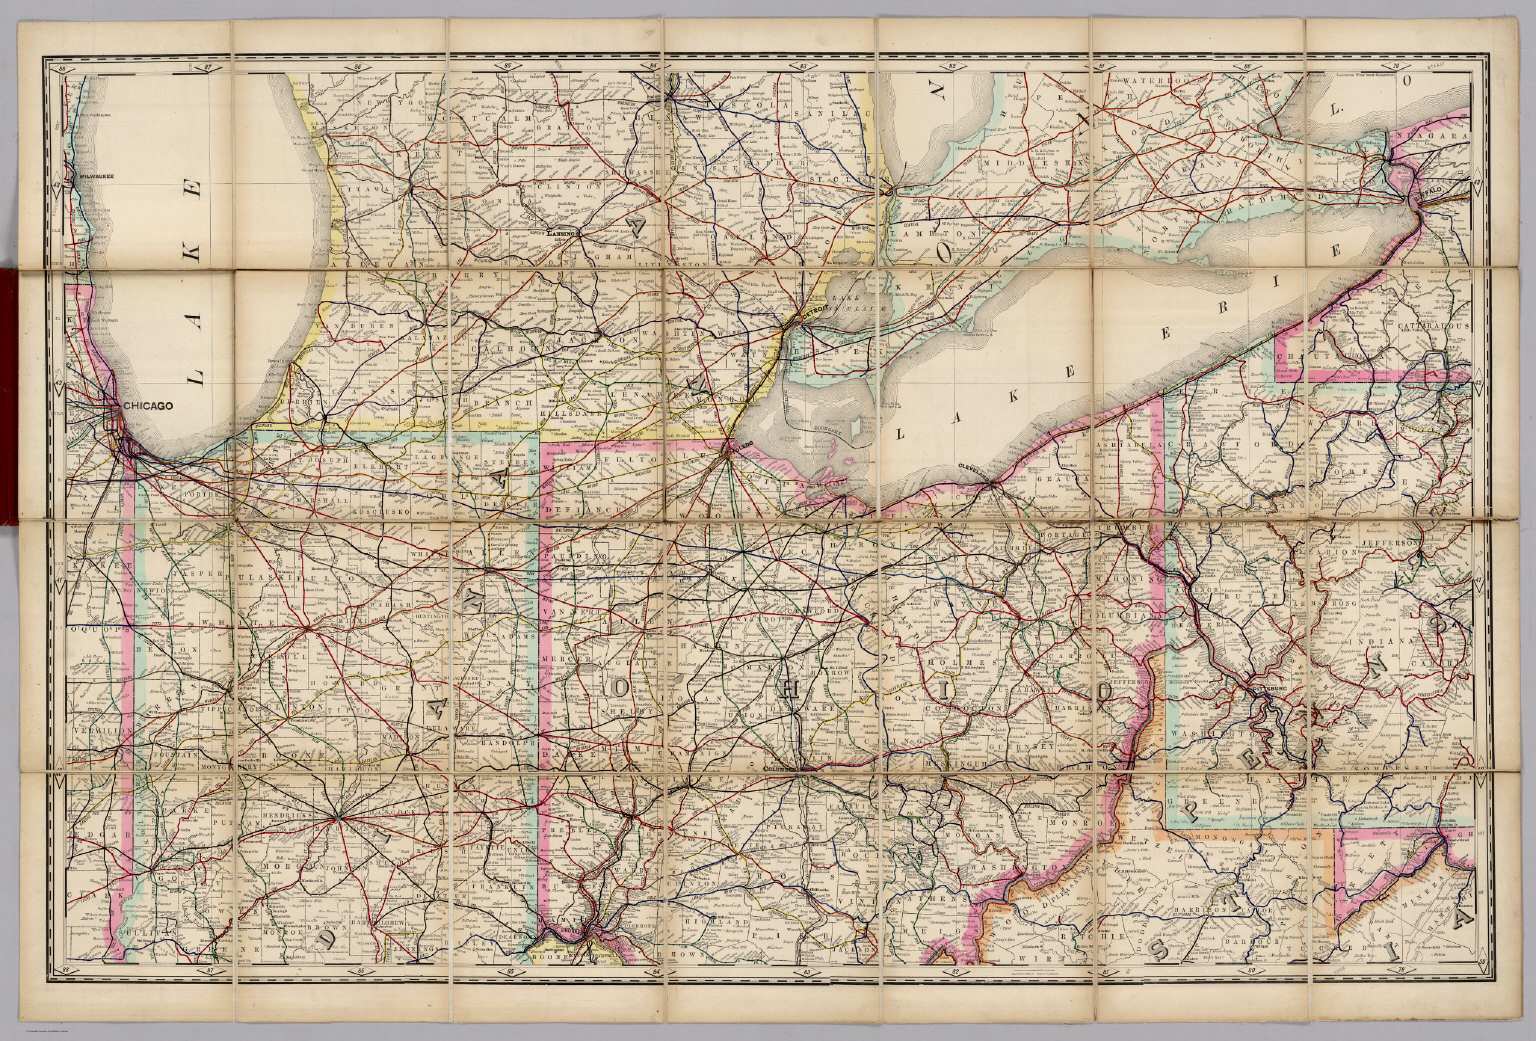 Indiana Ohio Railroad Map of the United States David Rumsey